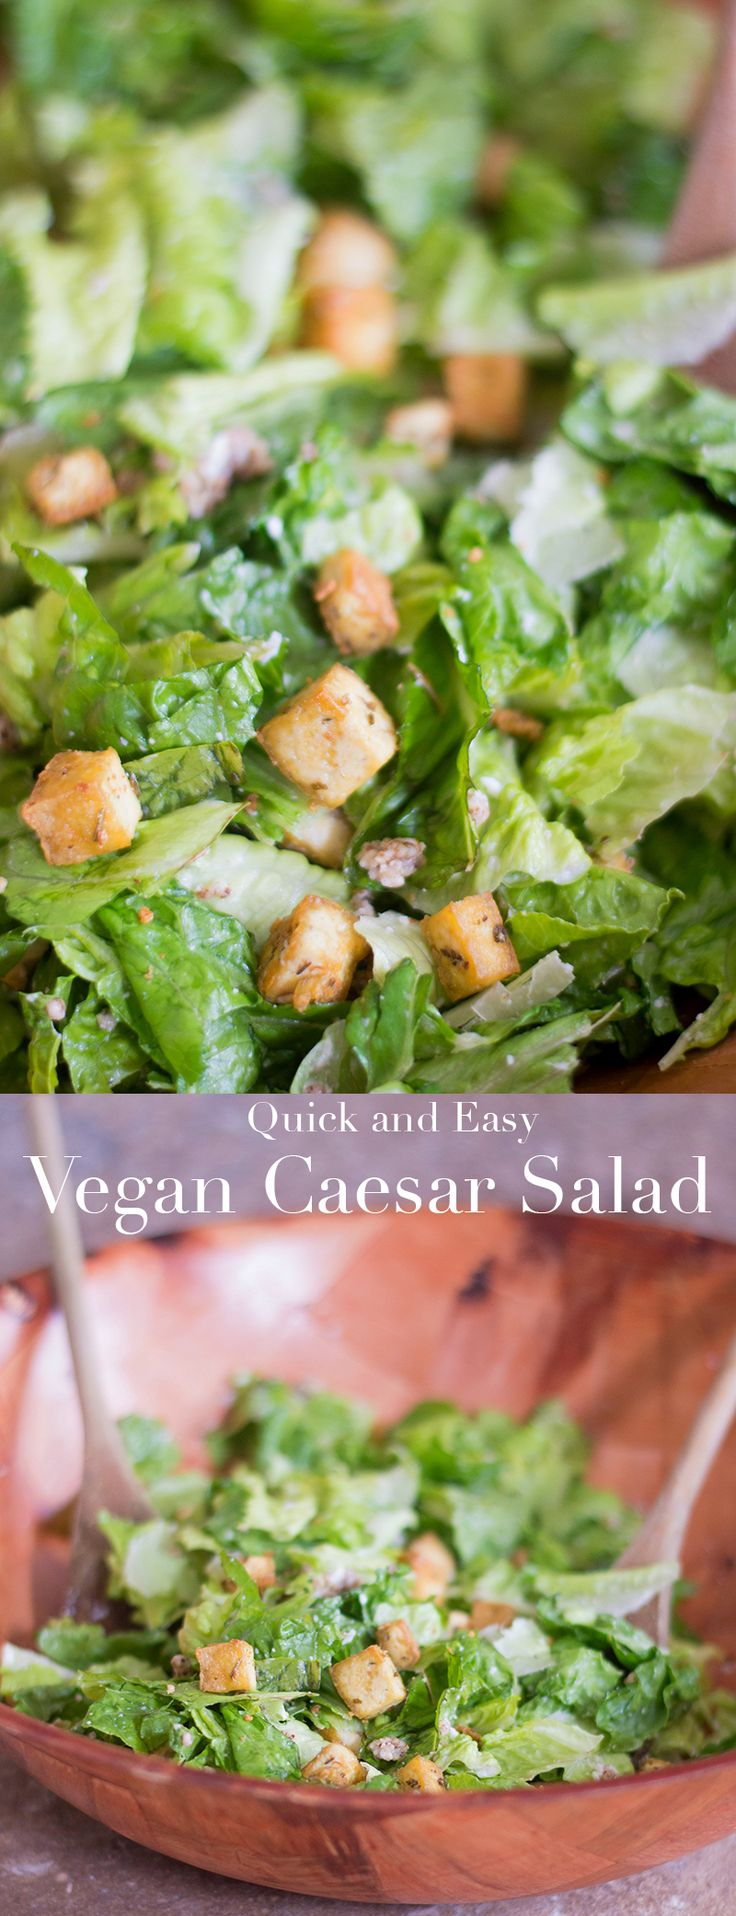 Quick and easy vegan caesar salad recipe. Make this healthy salad recipe for lunch or for dinner appetizer. Has vegan salad dressing and vegan Parmesan